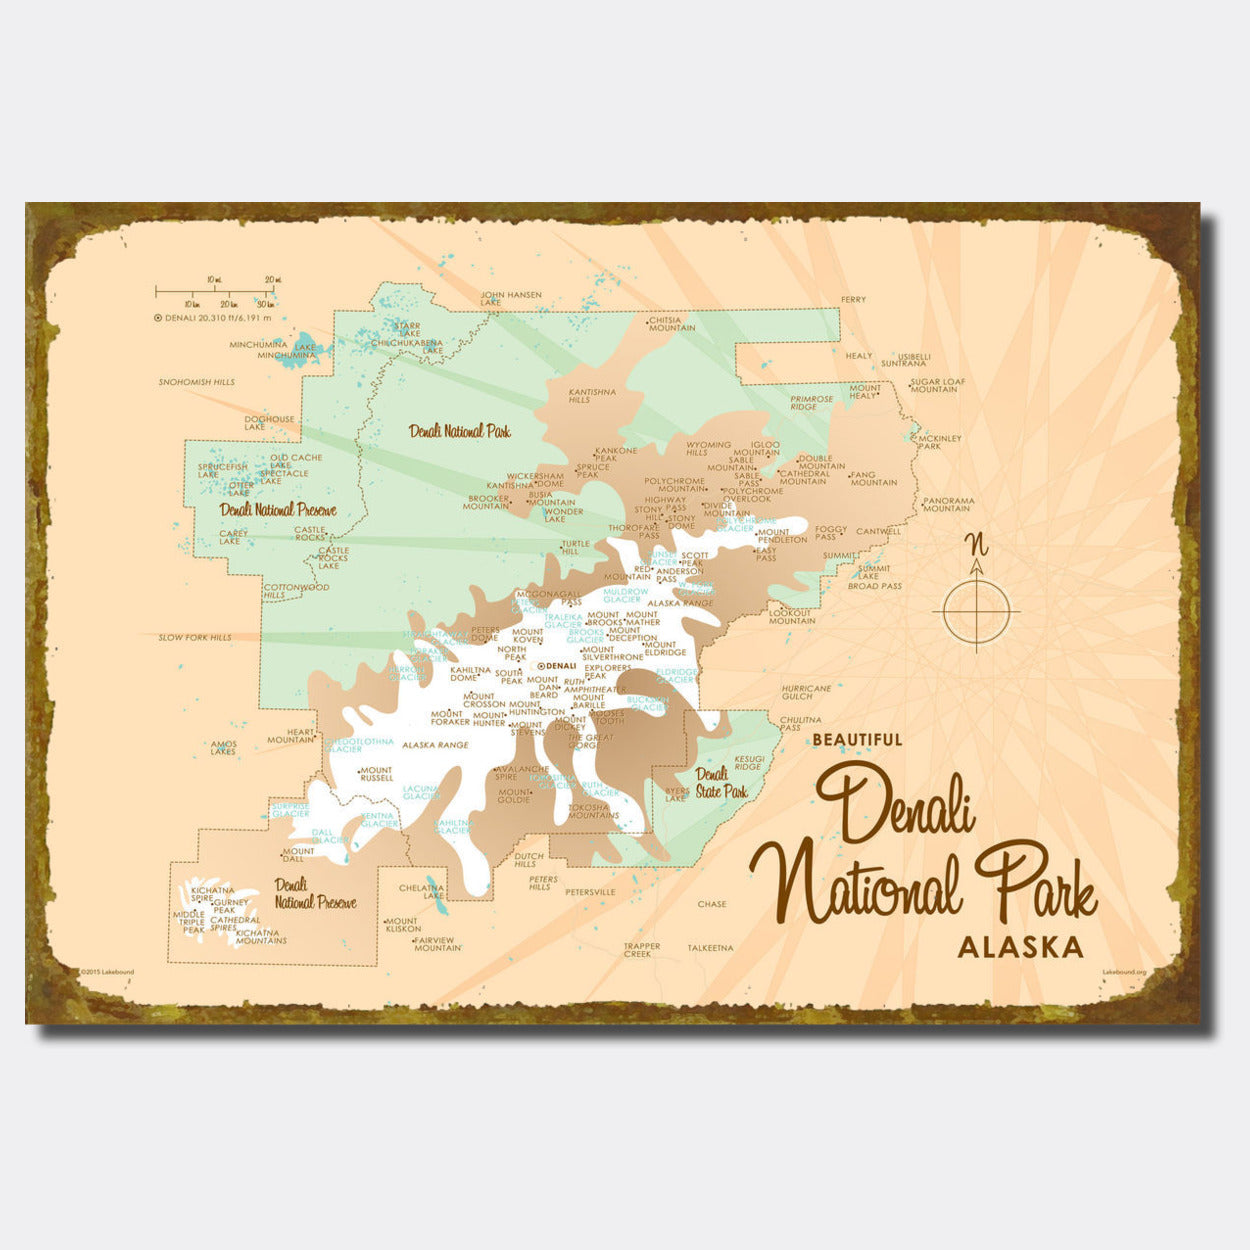 Denali National Park Alaska Sign Map Art Lakebound